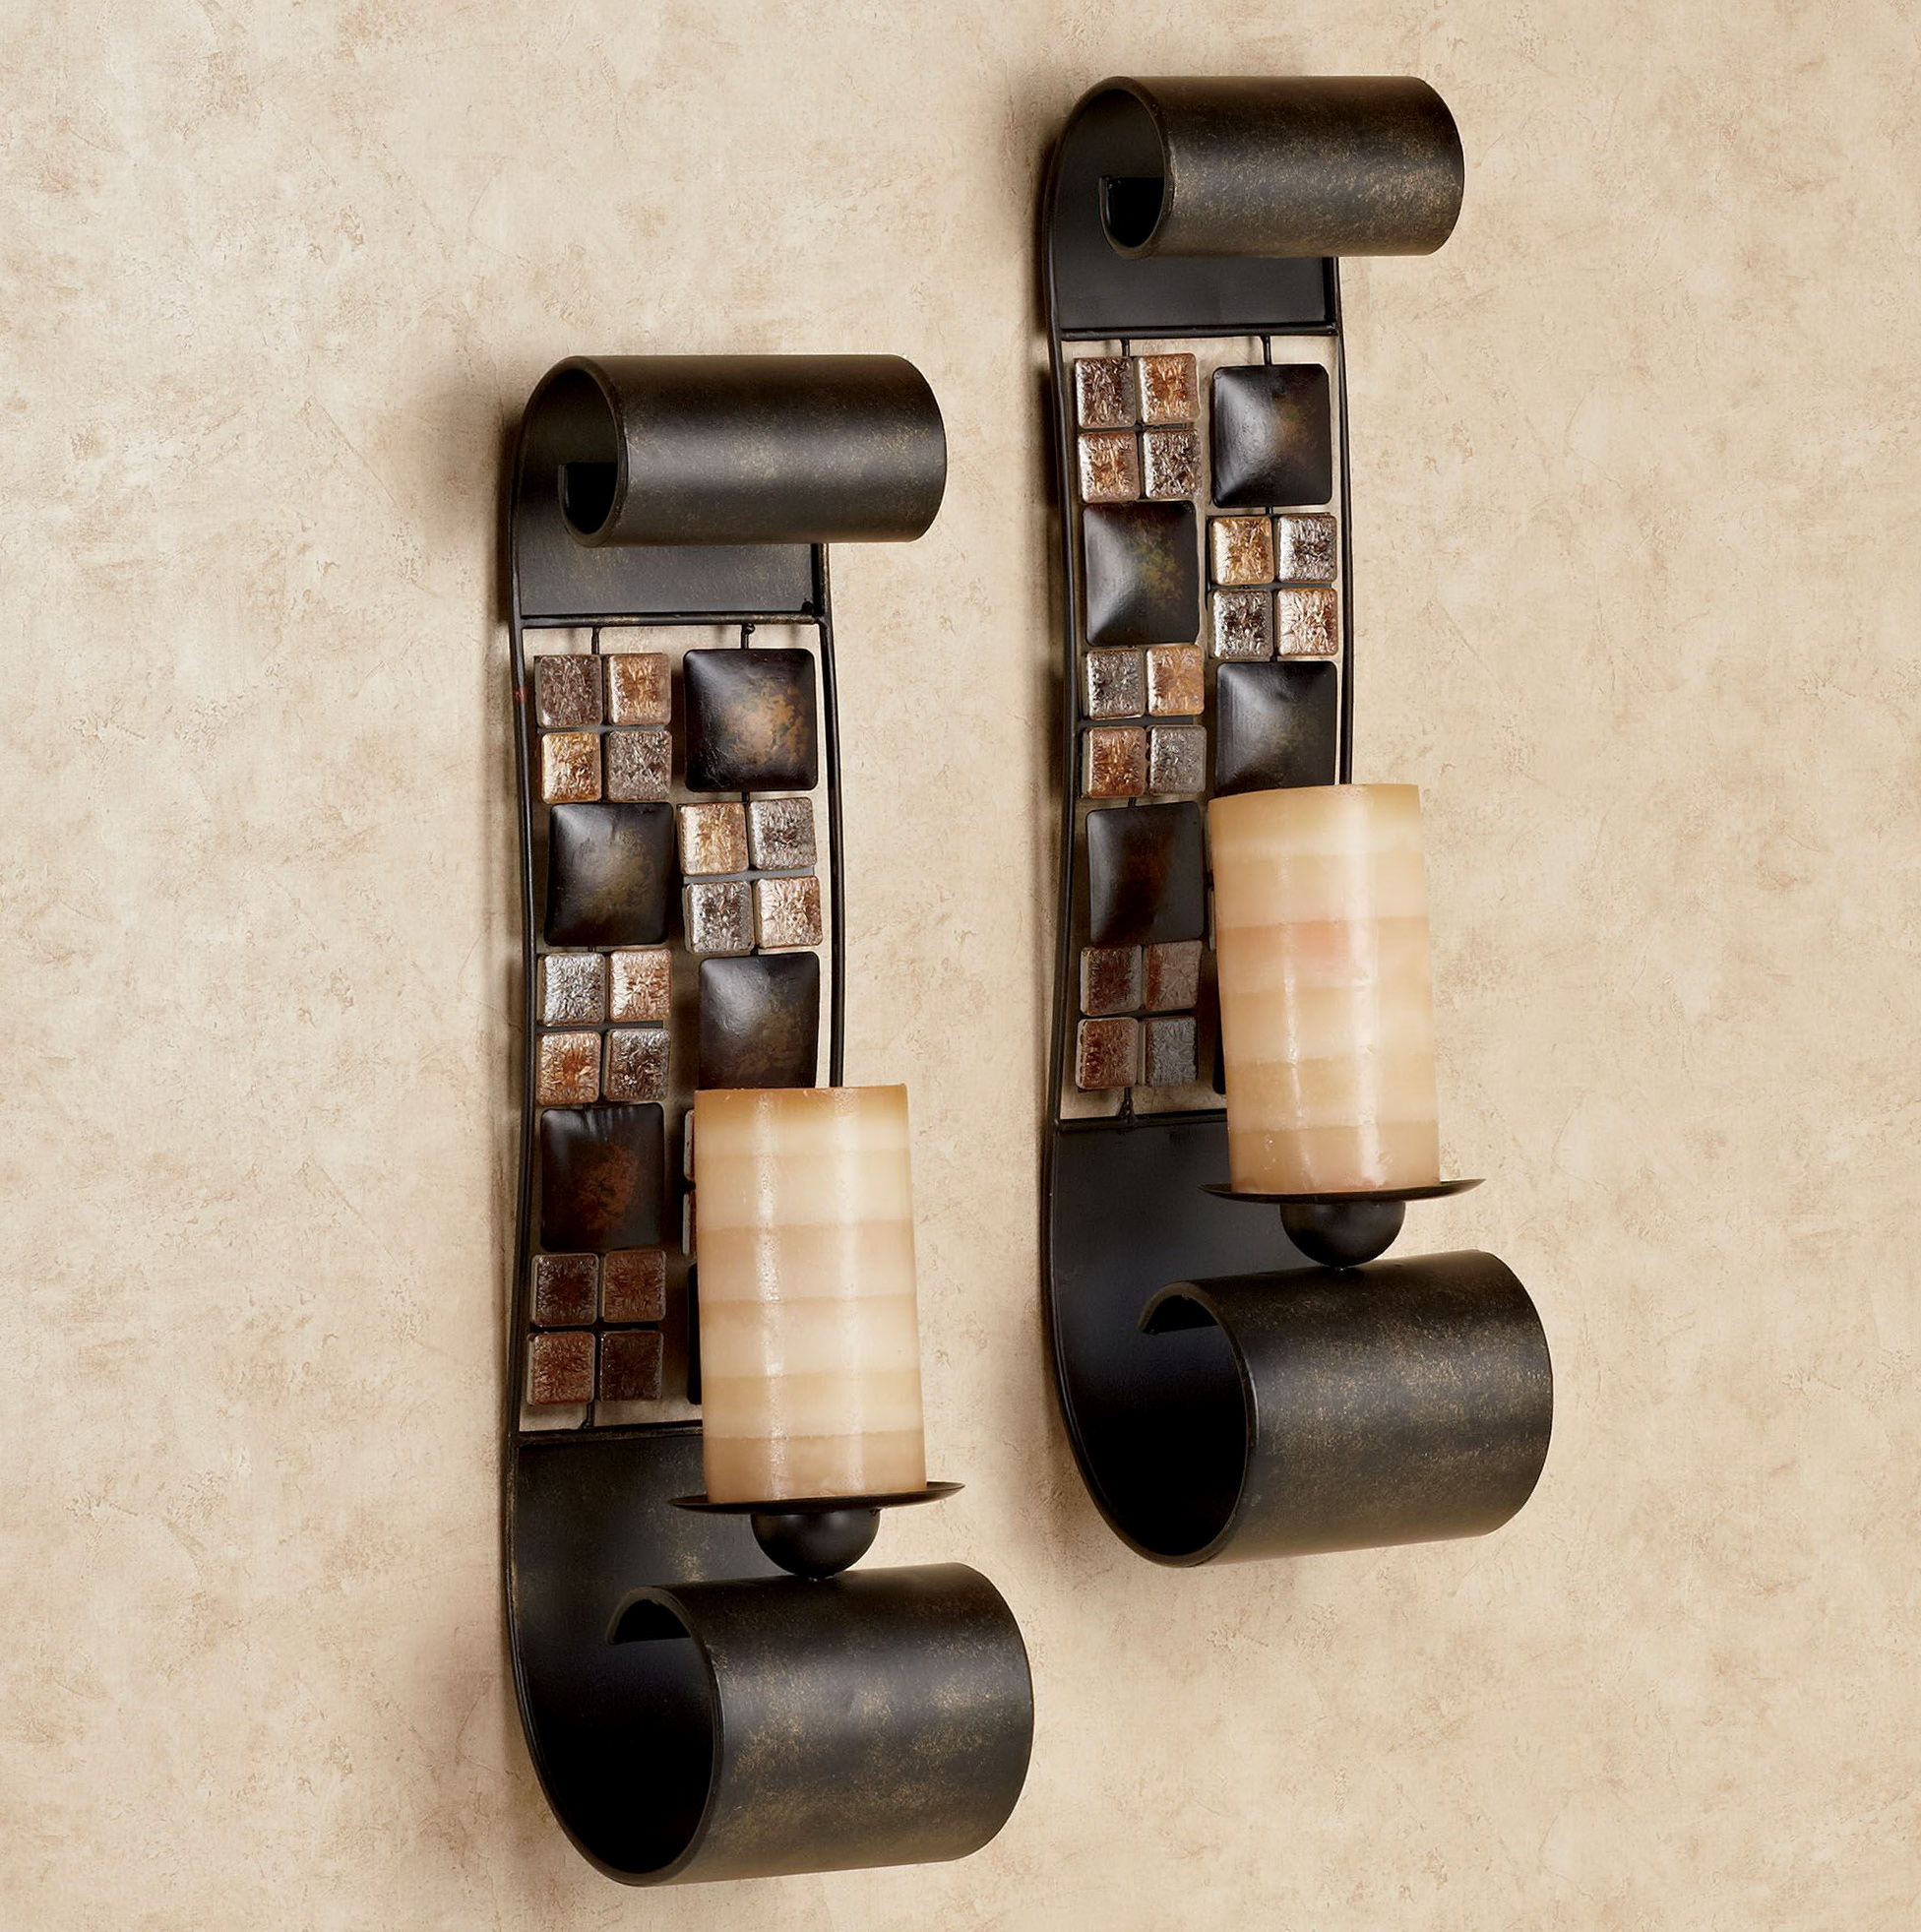 Mosaic Wall Sconce Candle Holders